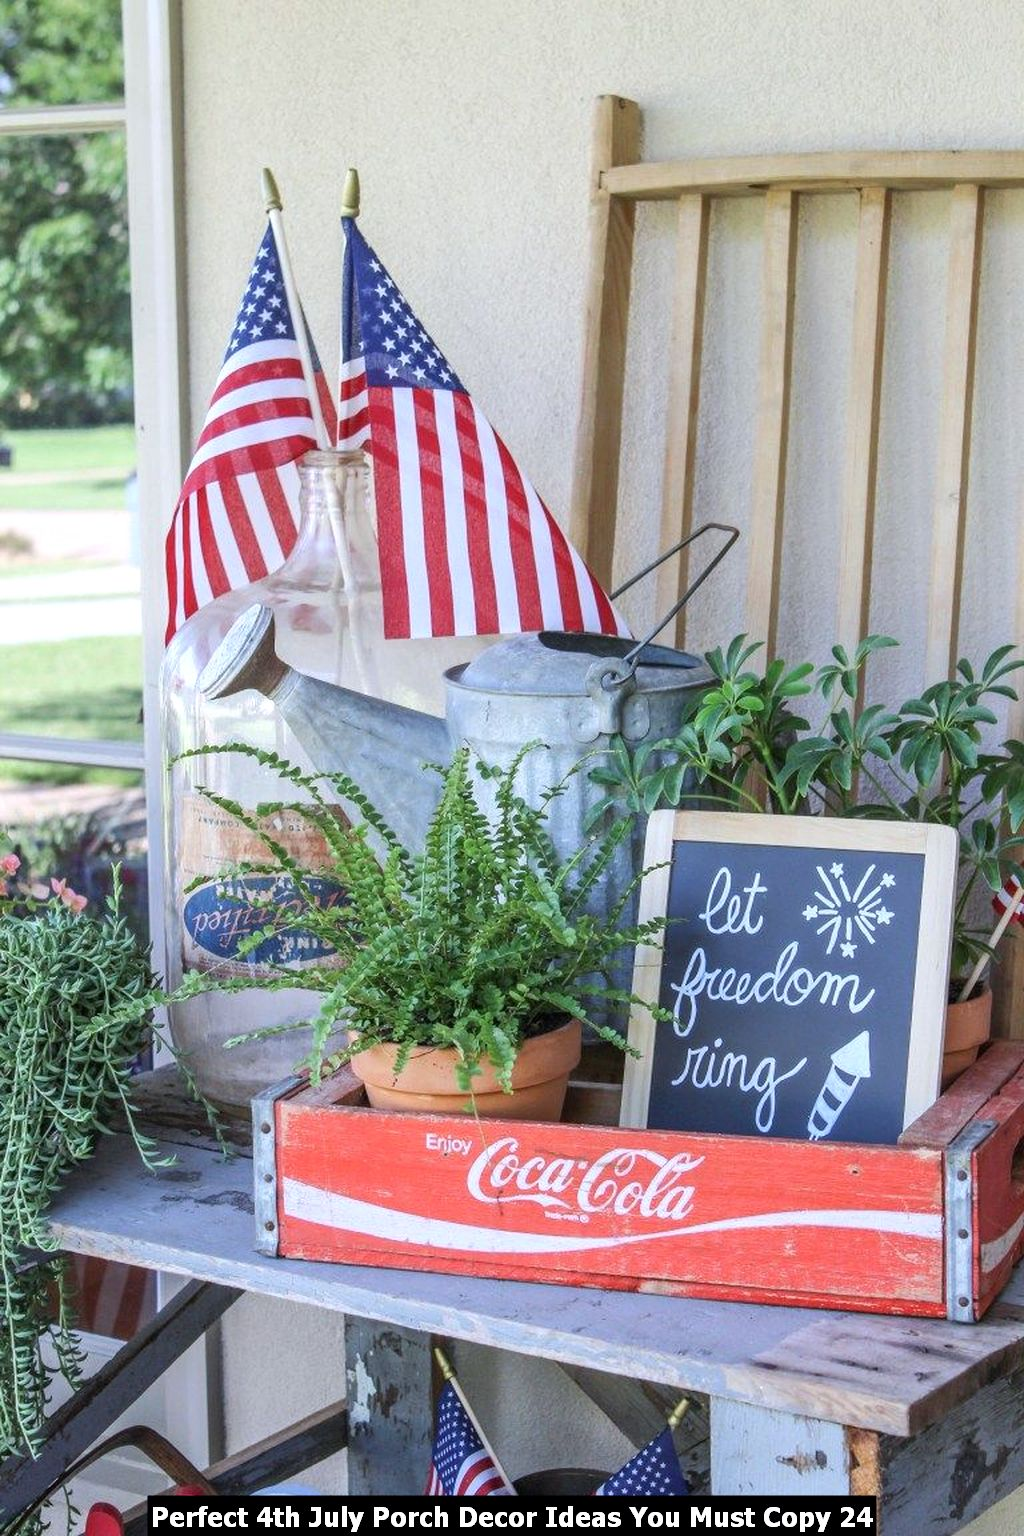 Perfect 4th July Porch Decor Ideas You Must Copy 24